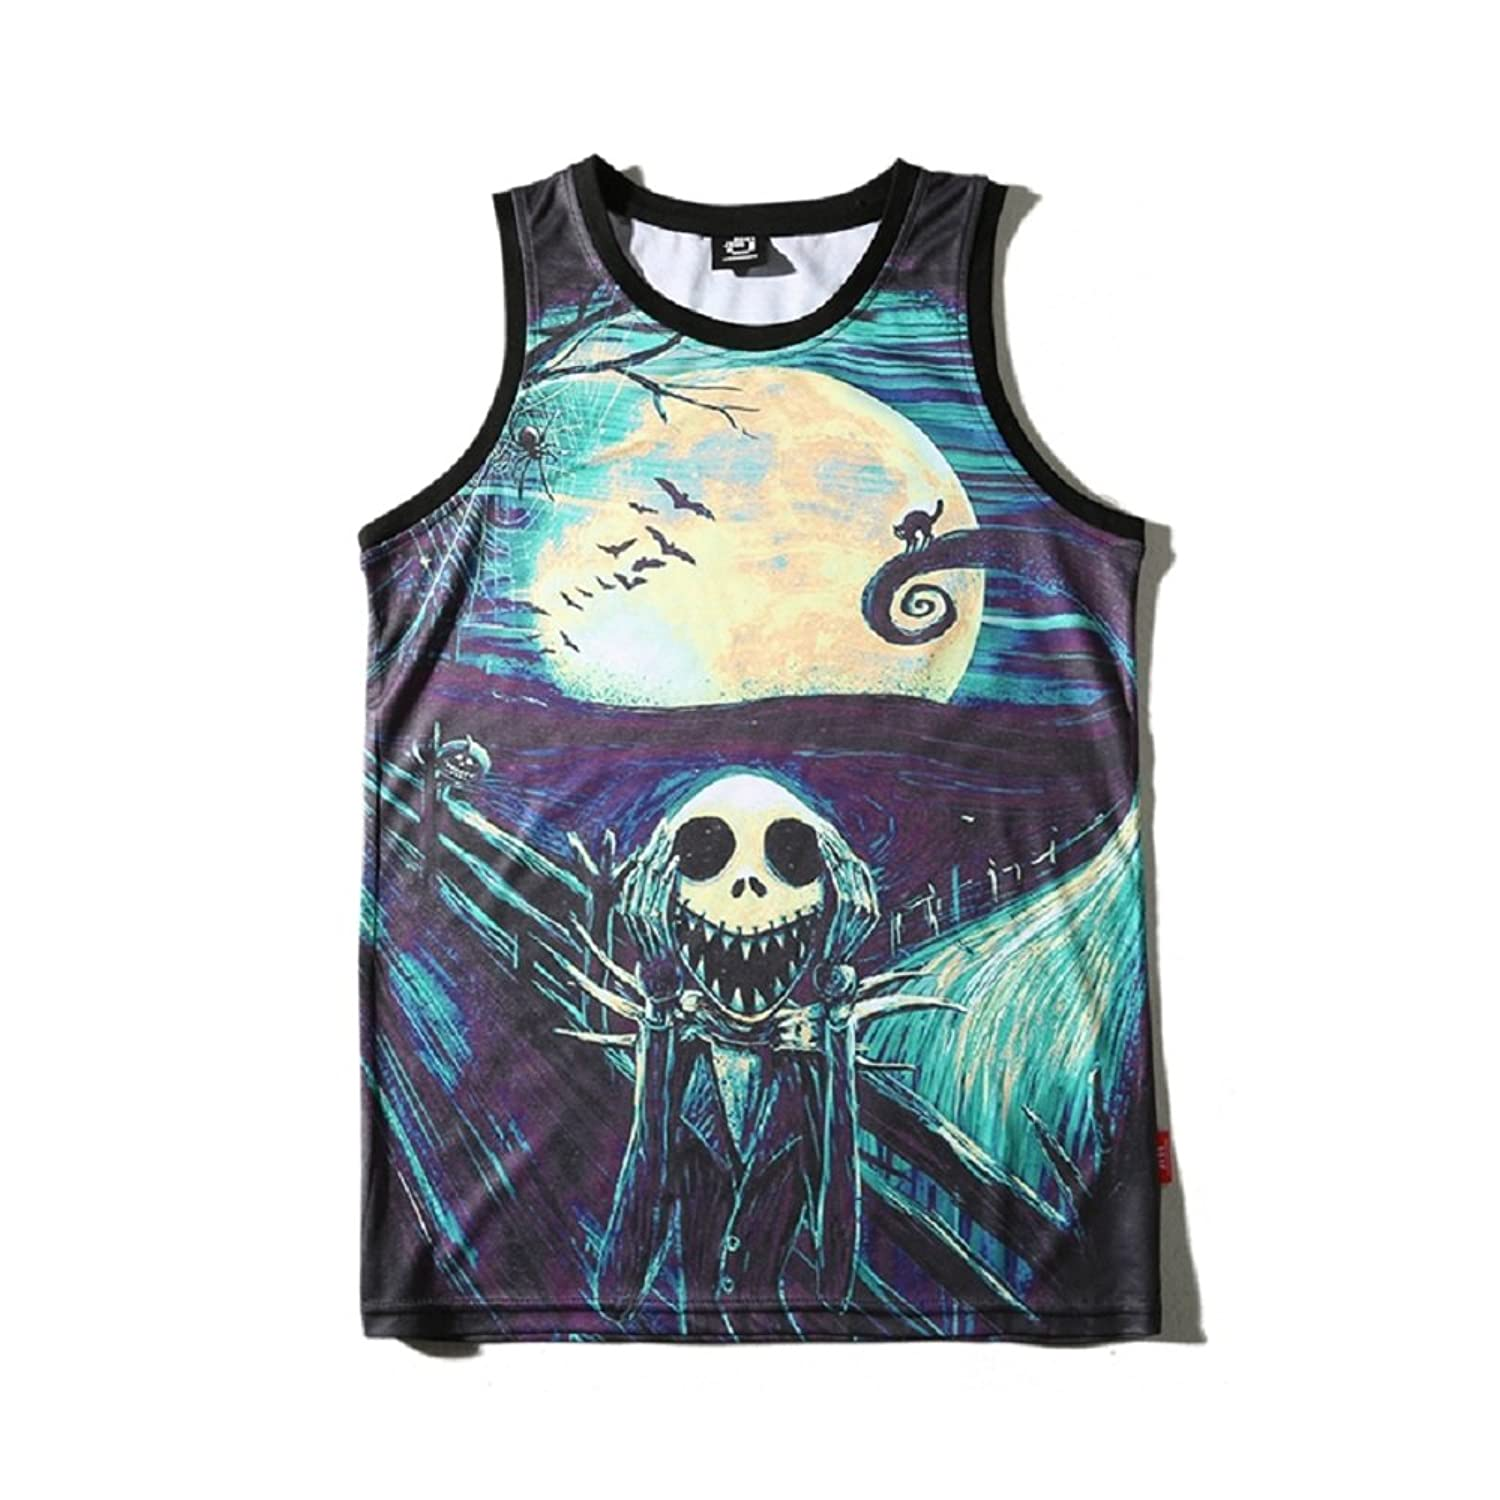 buy popular 3132e cc4bf  Not Fade Digital print tech., ensure each tank top has photo-realistic  imagery and lasting color stability